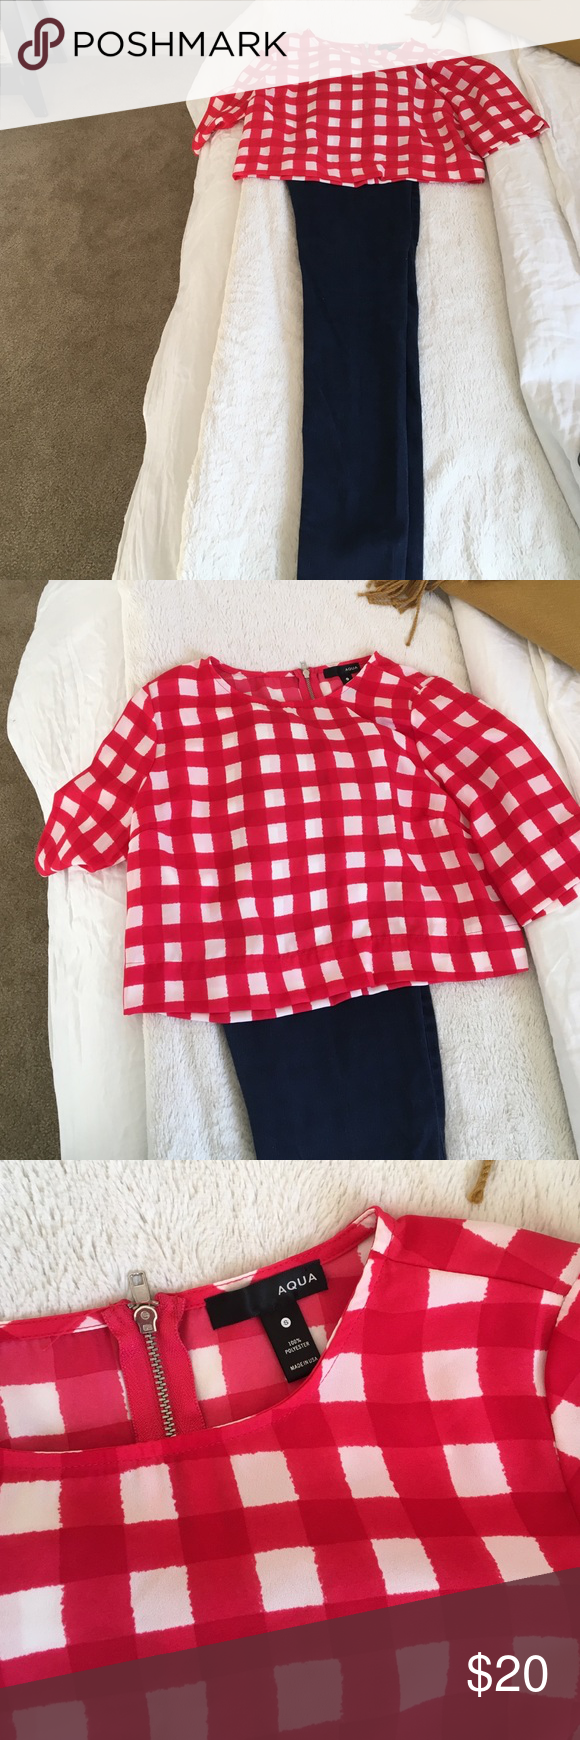 Adorable Aqua red and white plaid crop top Adorable red and white plaid crop top. WORN ONCE!!!! It is by Aqua. It is silky fabric. Runs true to size. Zipper in the back.  It can be worn with high waisted jeans or I wore it for the 4th of July with a cute white skirt! Aqua Tops Crop Tops